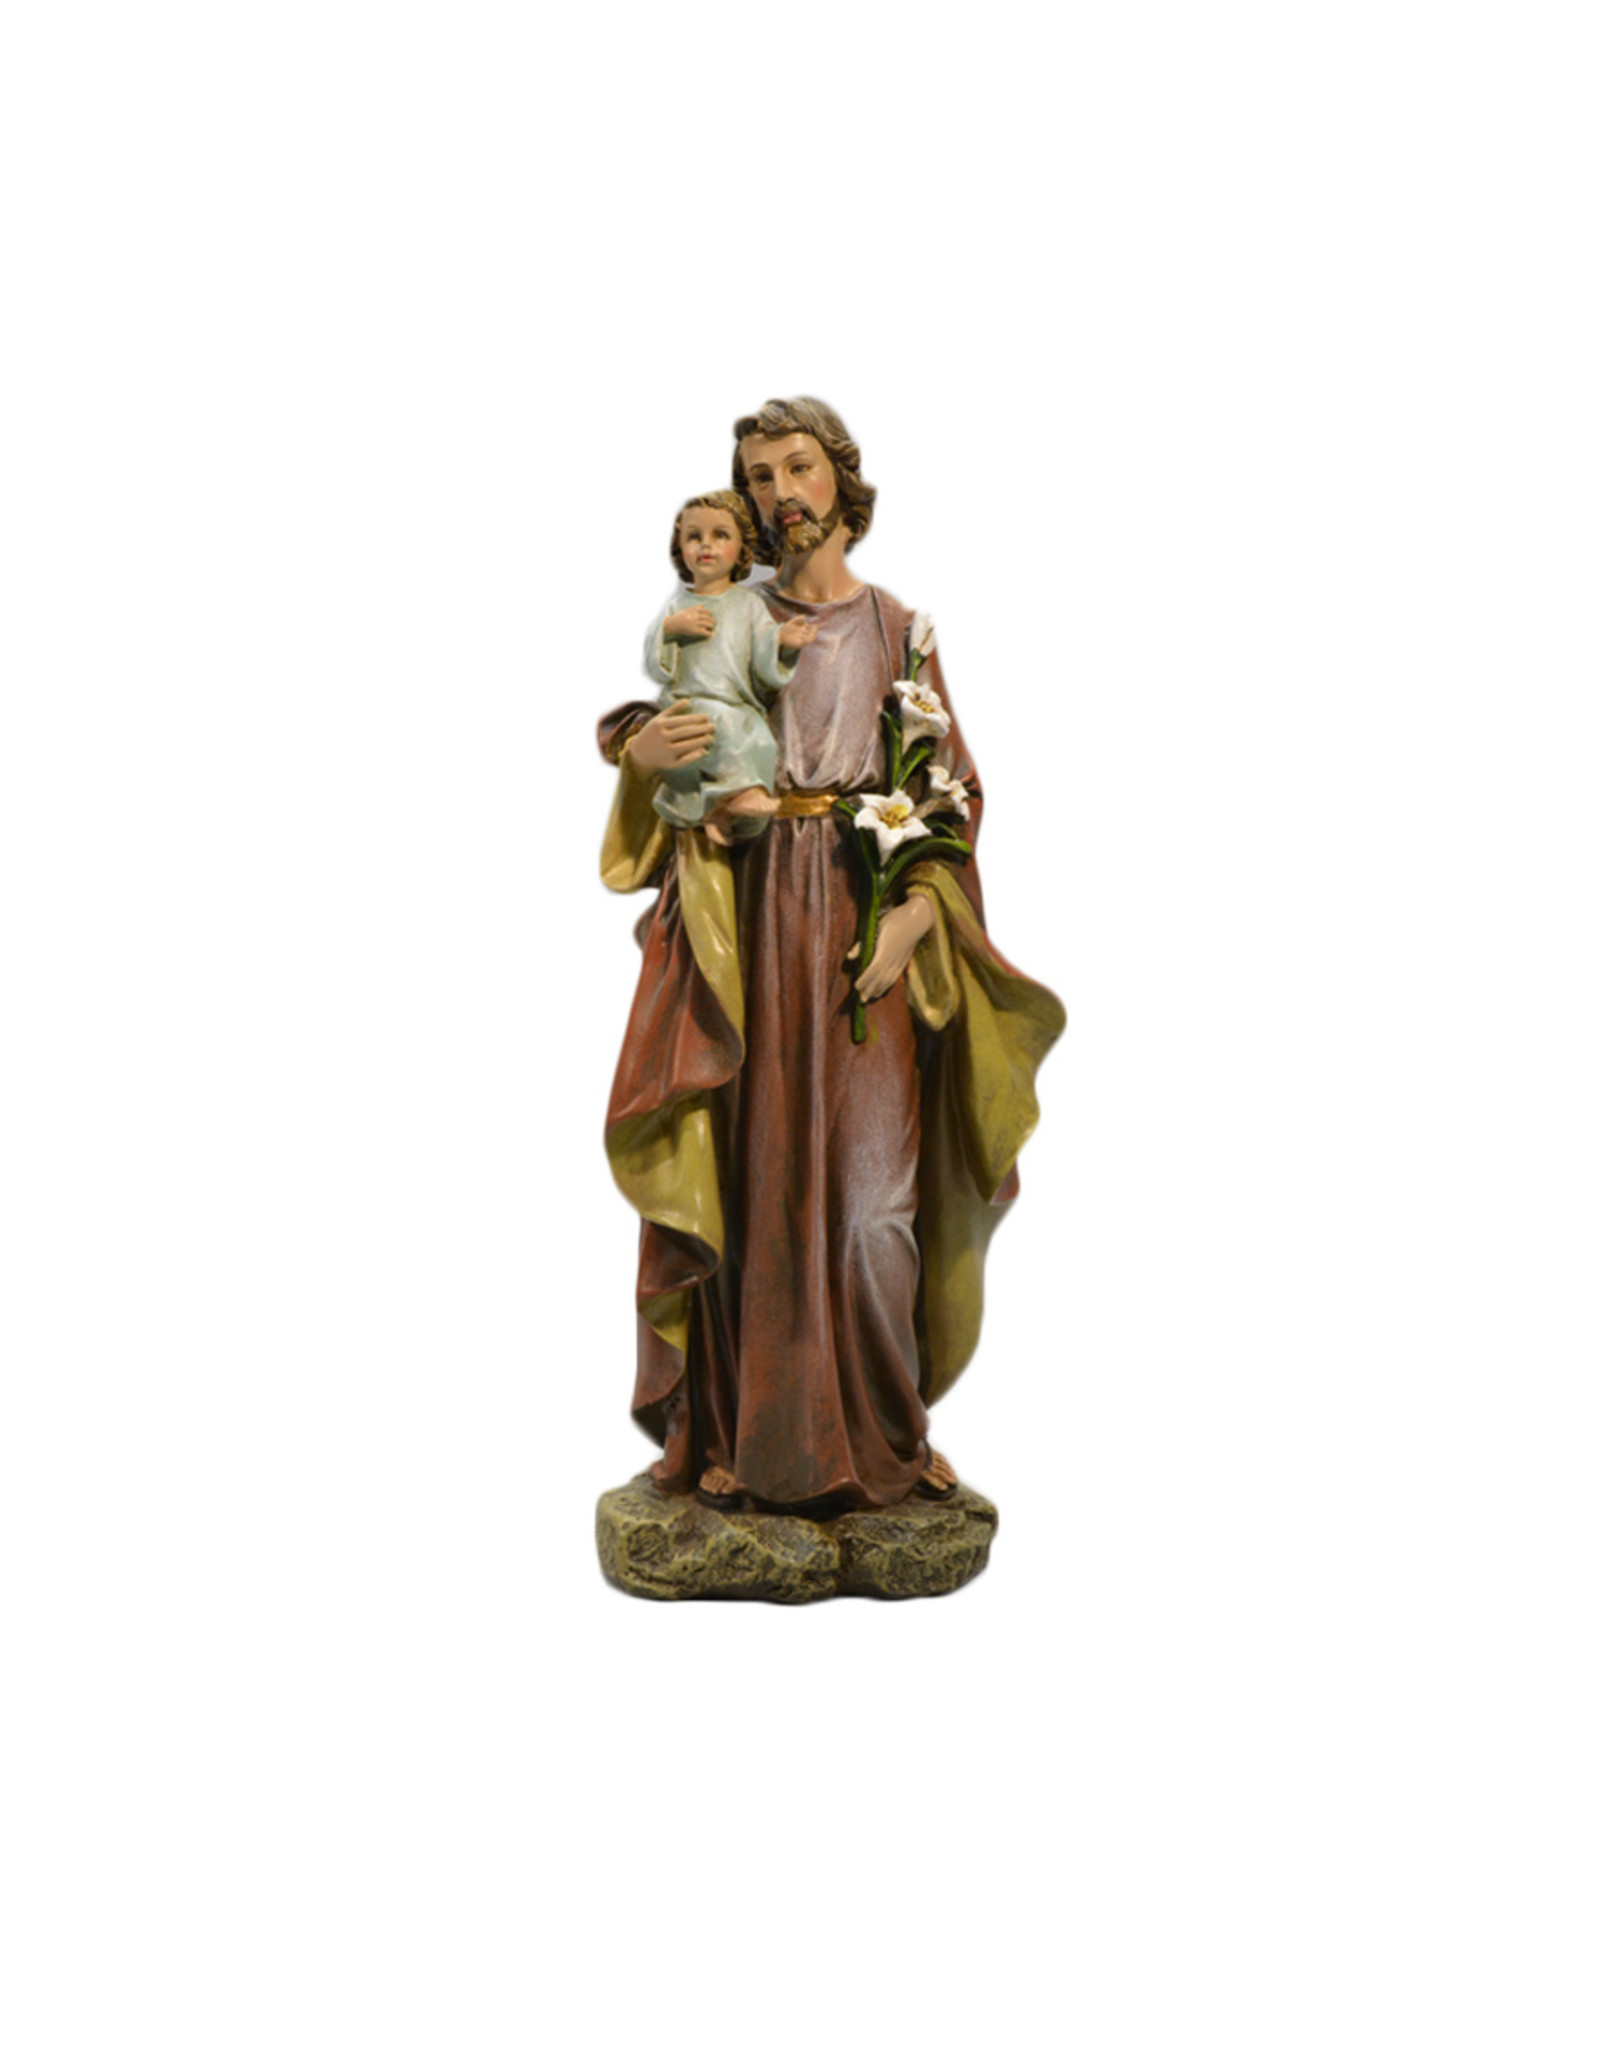 Joseph's Studio / Roman Saint Joseph and Christ Child statue (25cm)